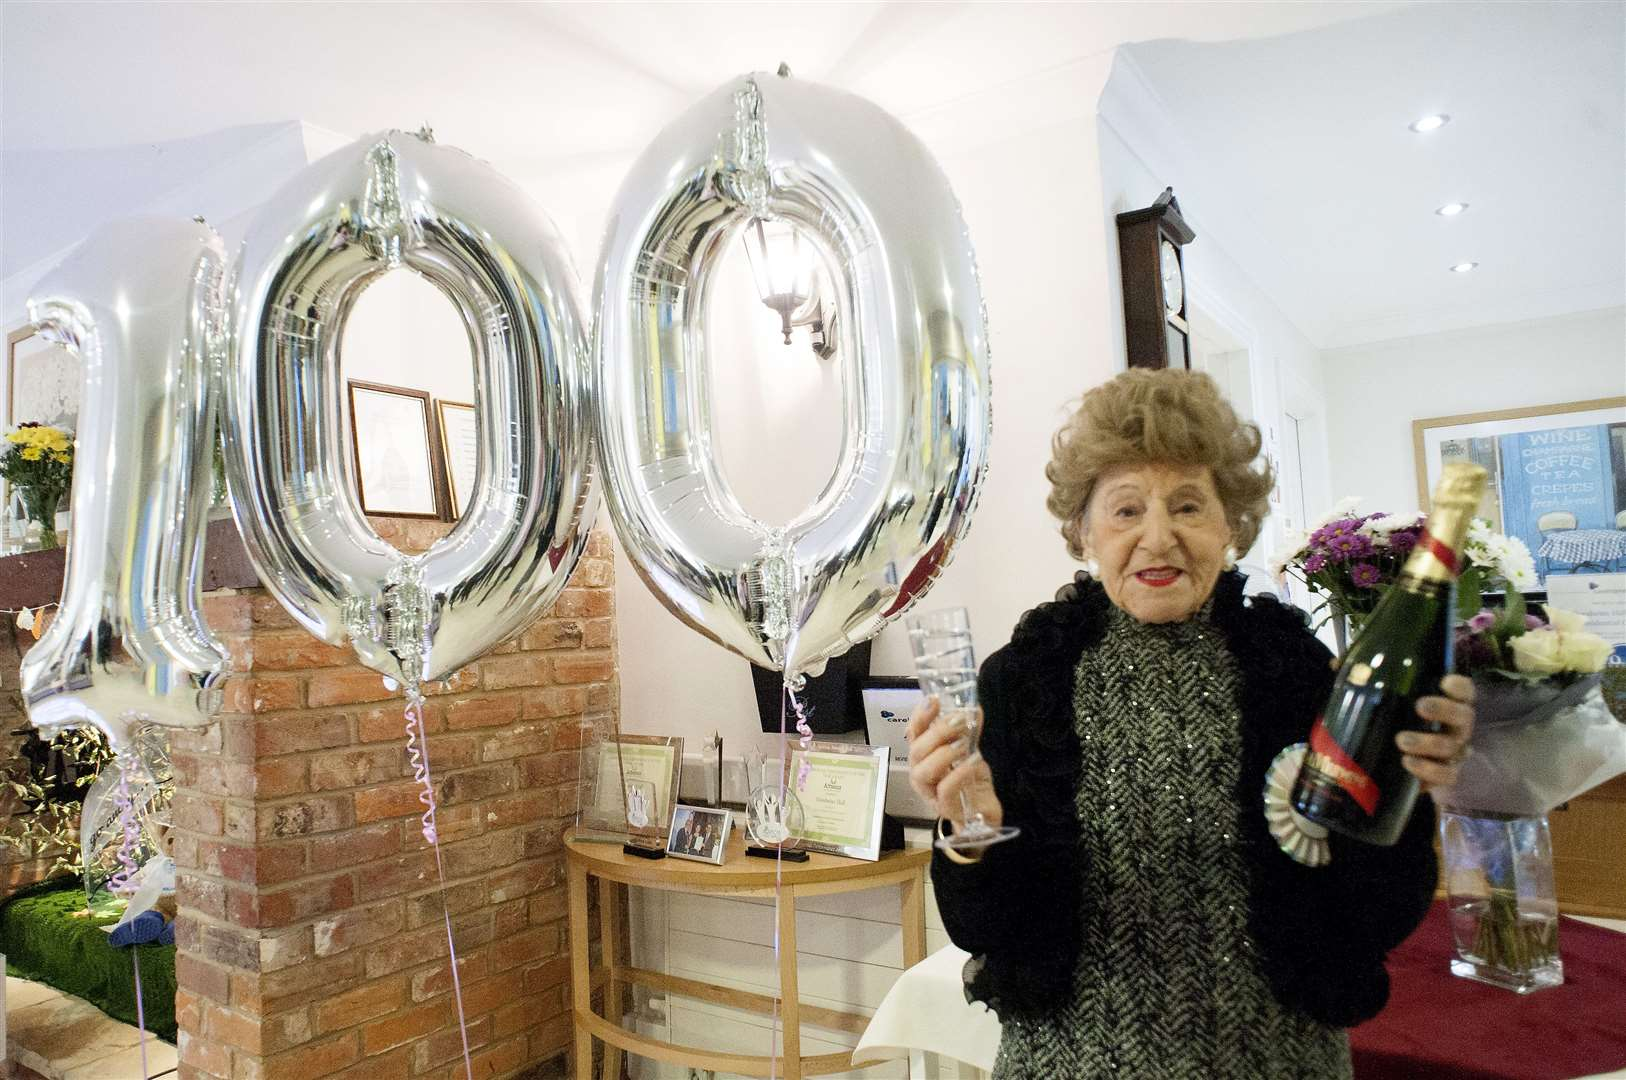 100th Birthday for Joan Phillips, a resident at Goodwins Hall Care Home in King's Lynn